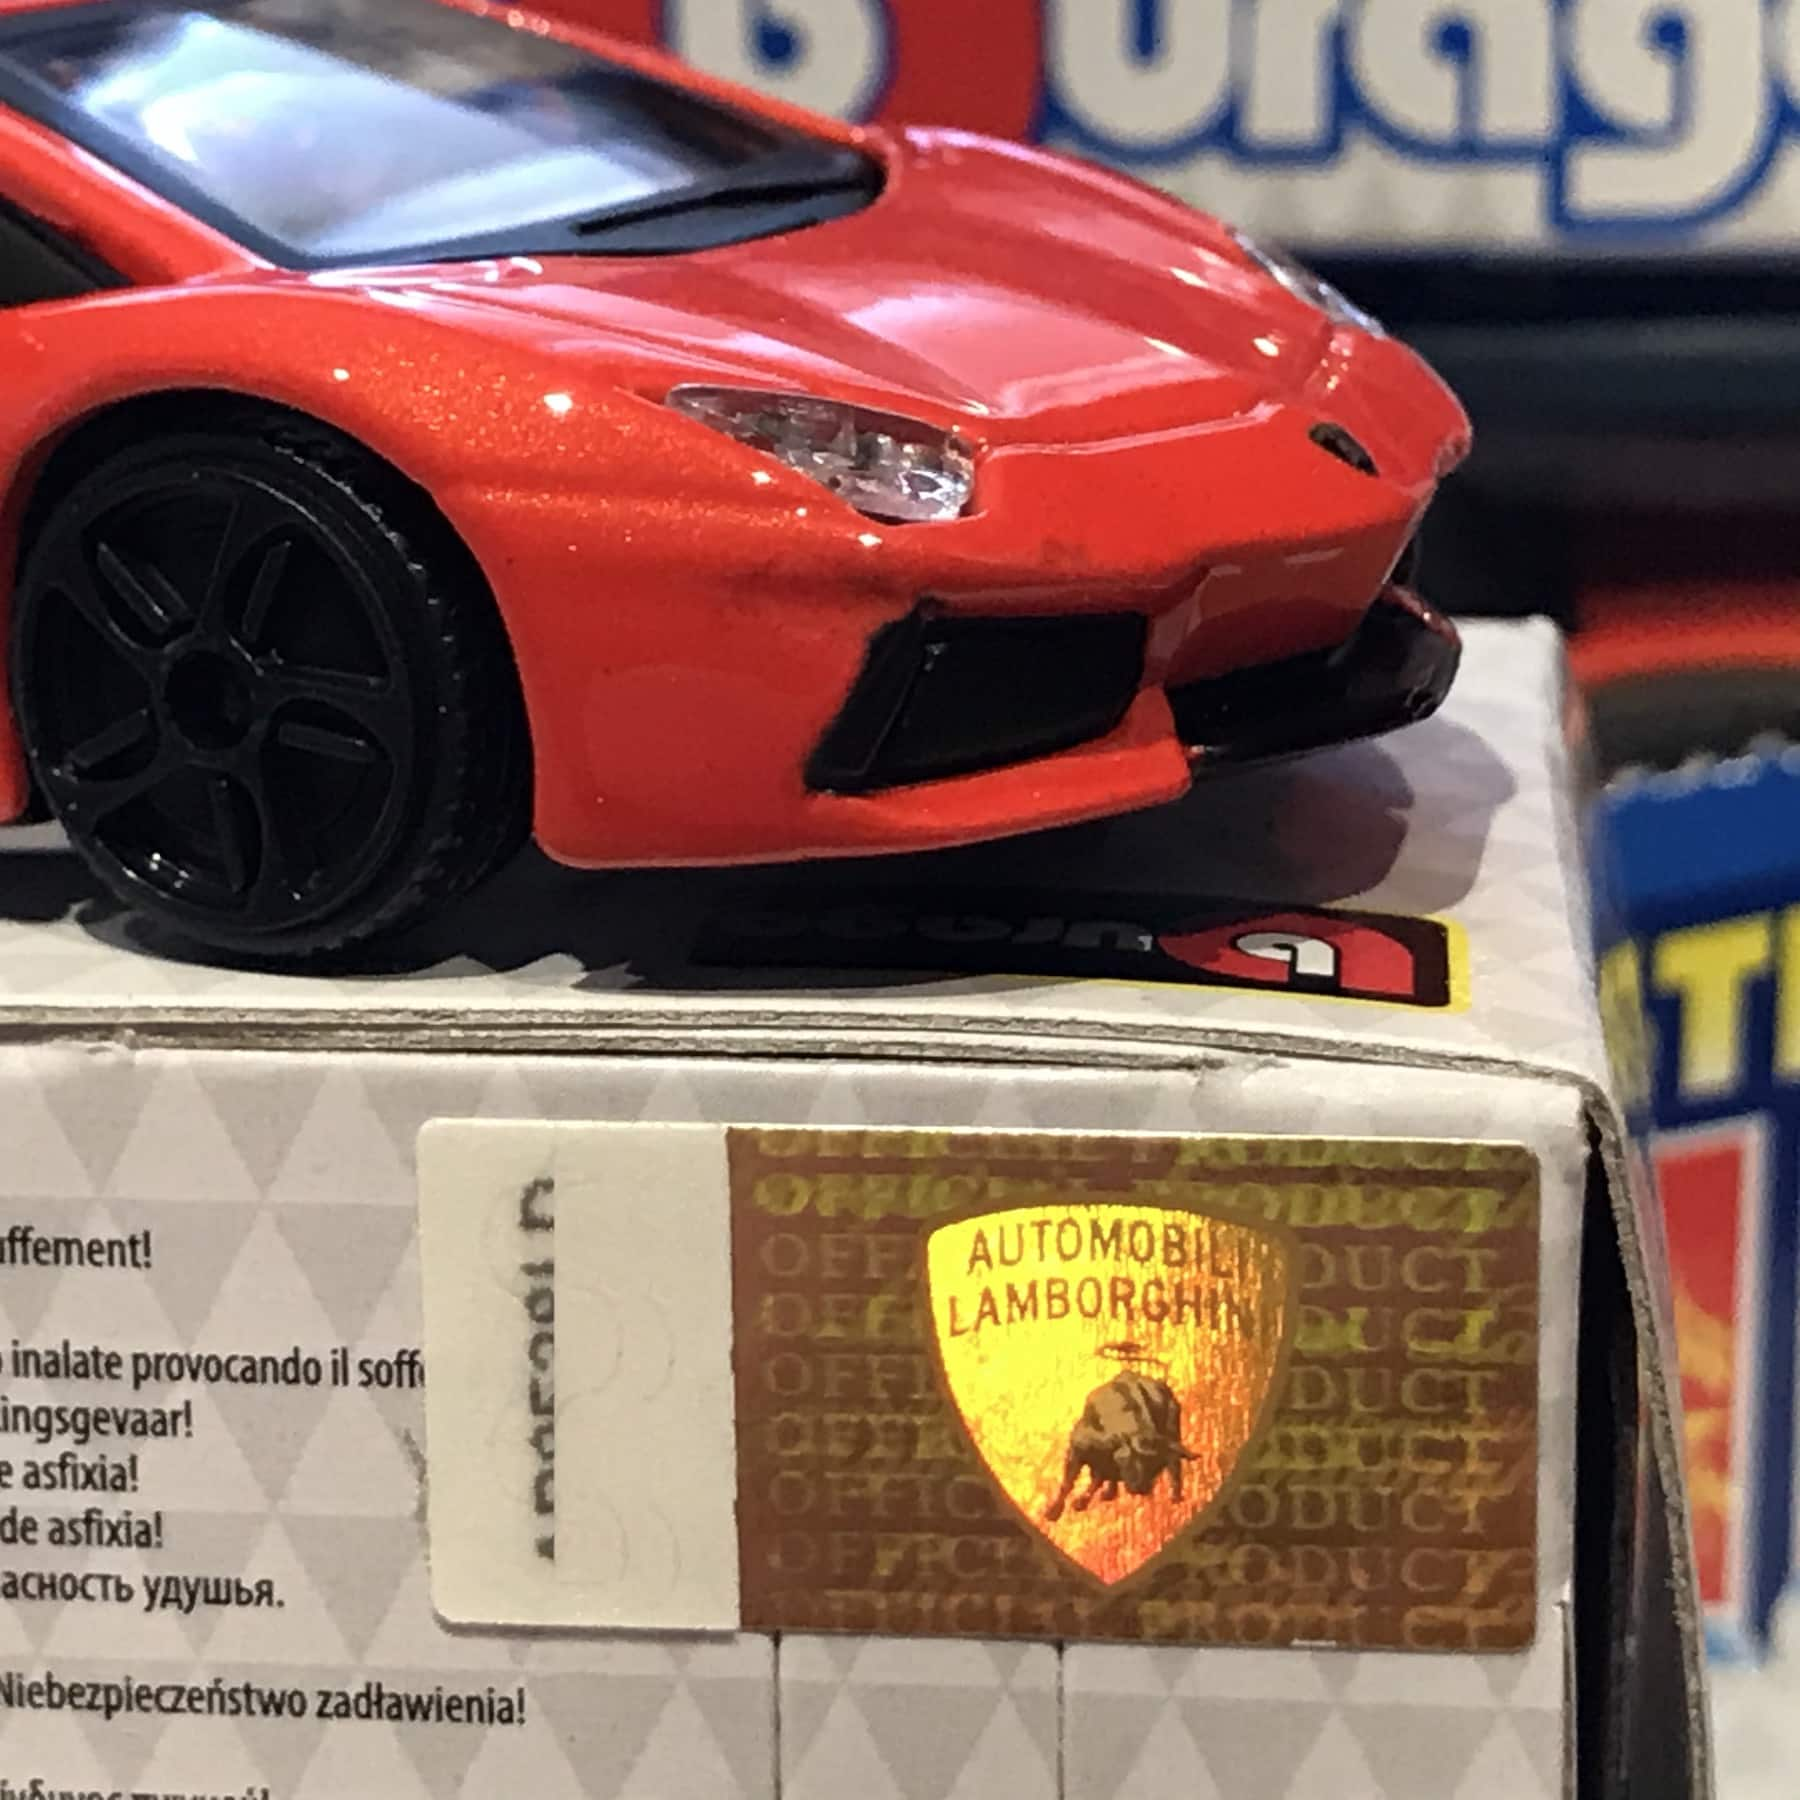 Lamborghini Street Fire Red 1:43 Scale Model Car Toy Childs Kids Dads Enthusiasts Collectors Gift Present